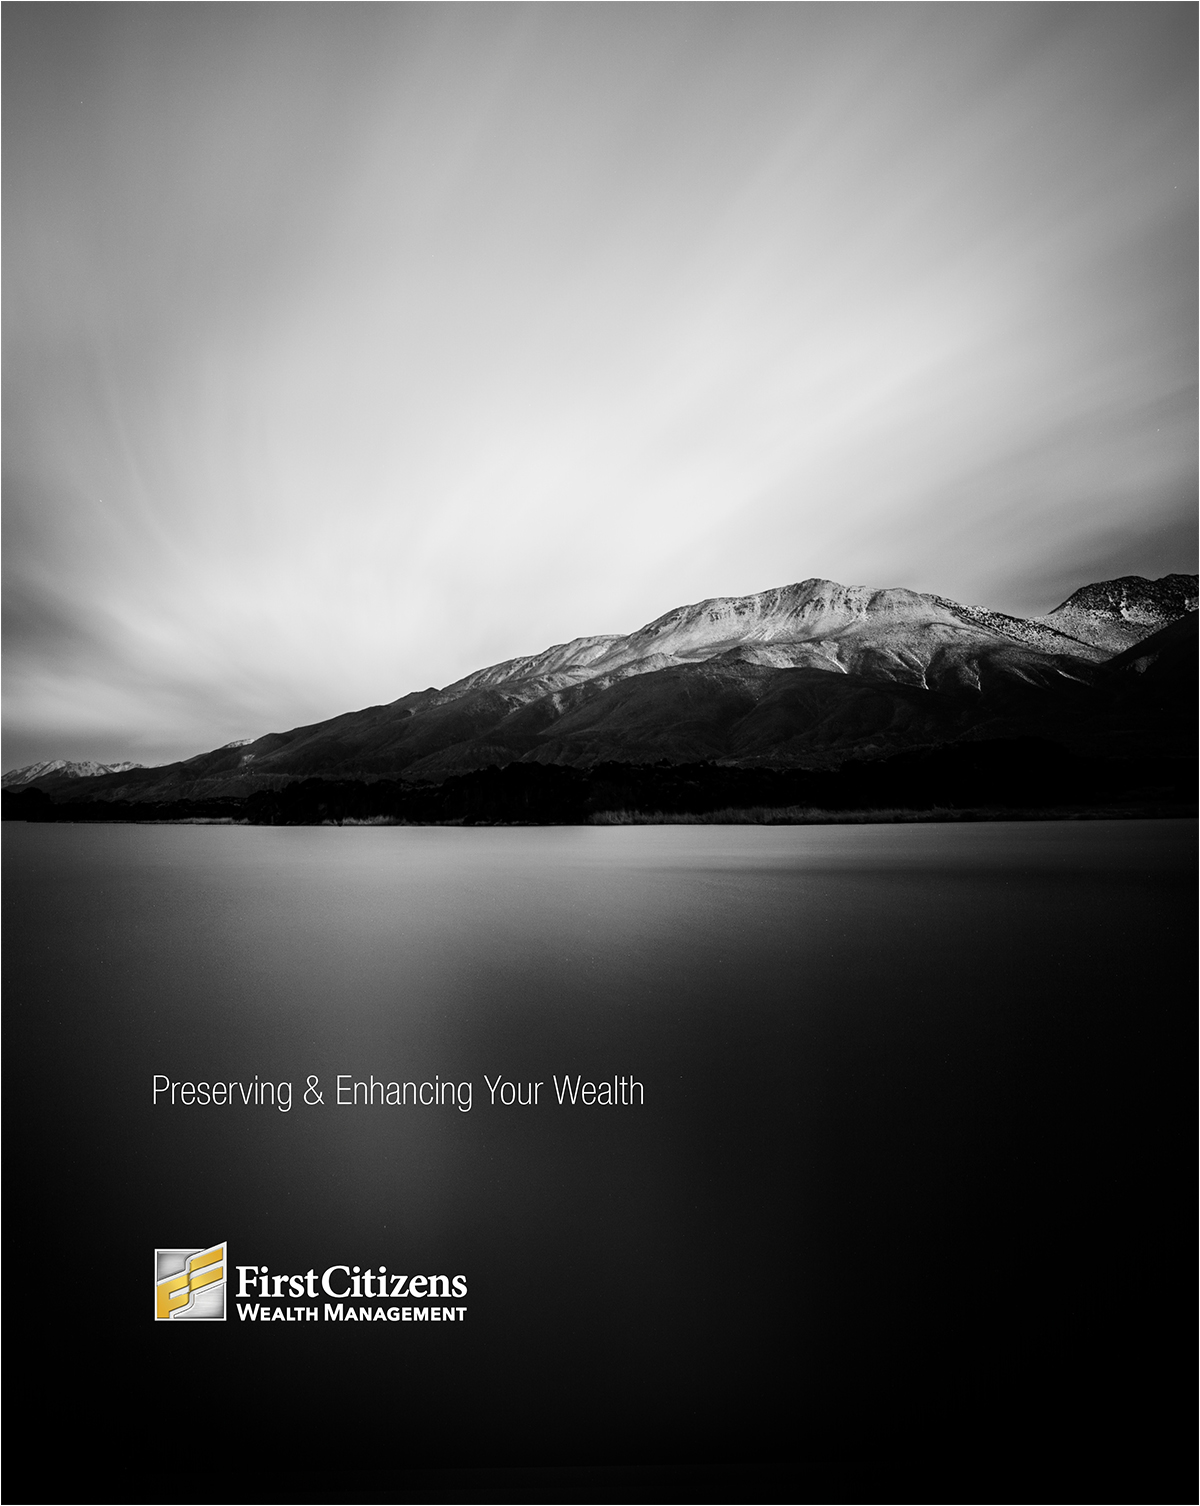 Preserving & Enhancing Your Wealth